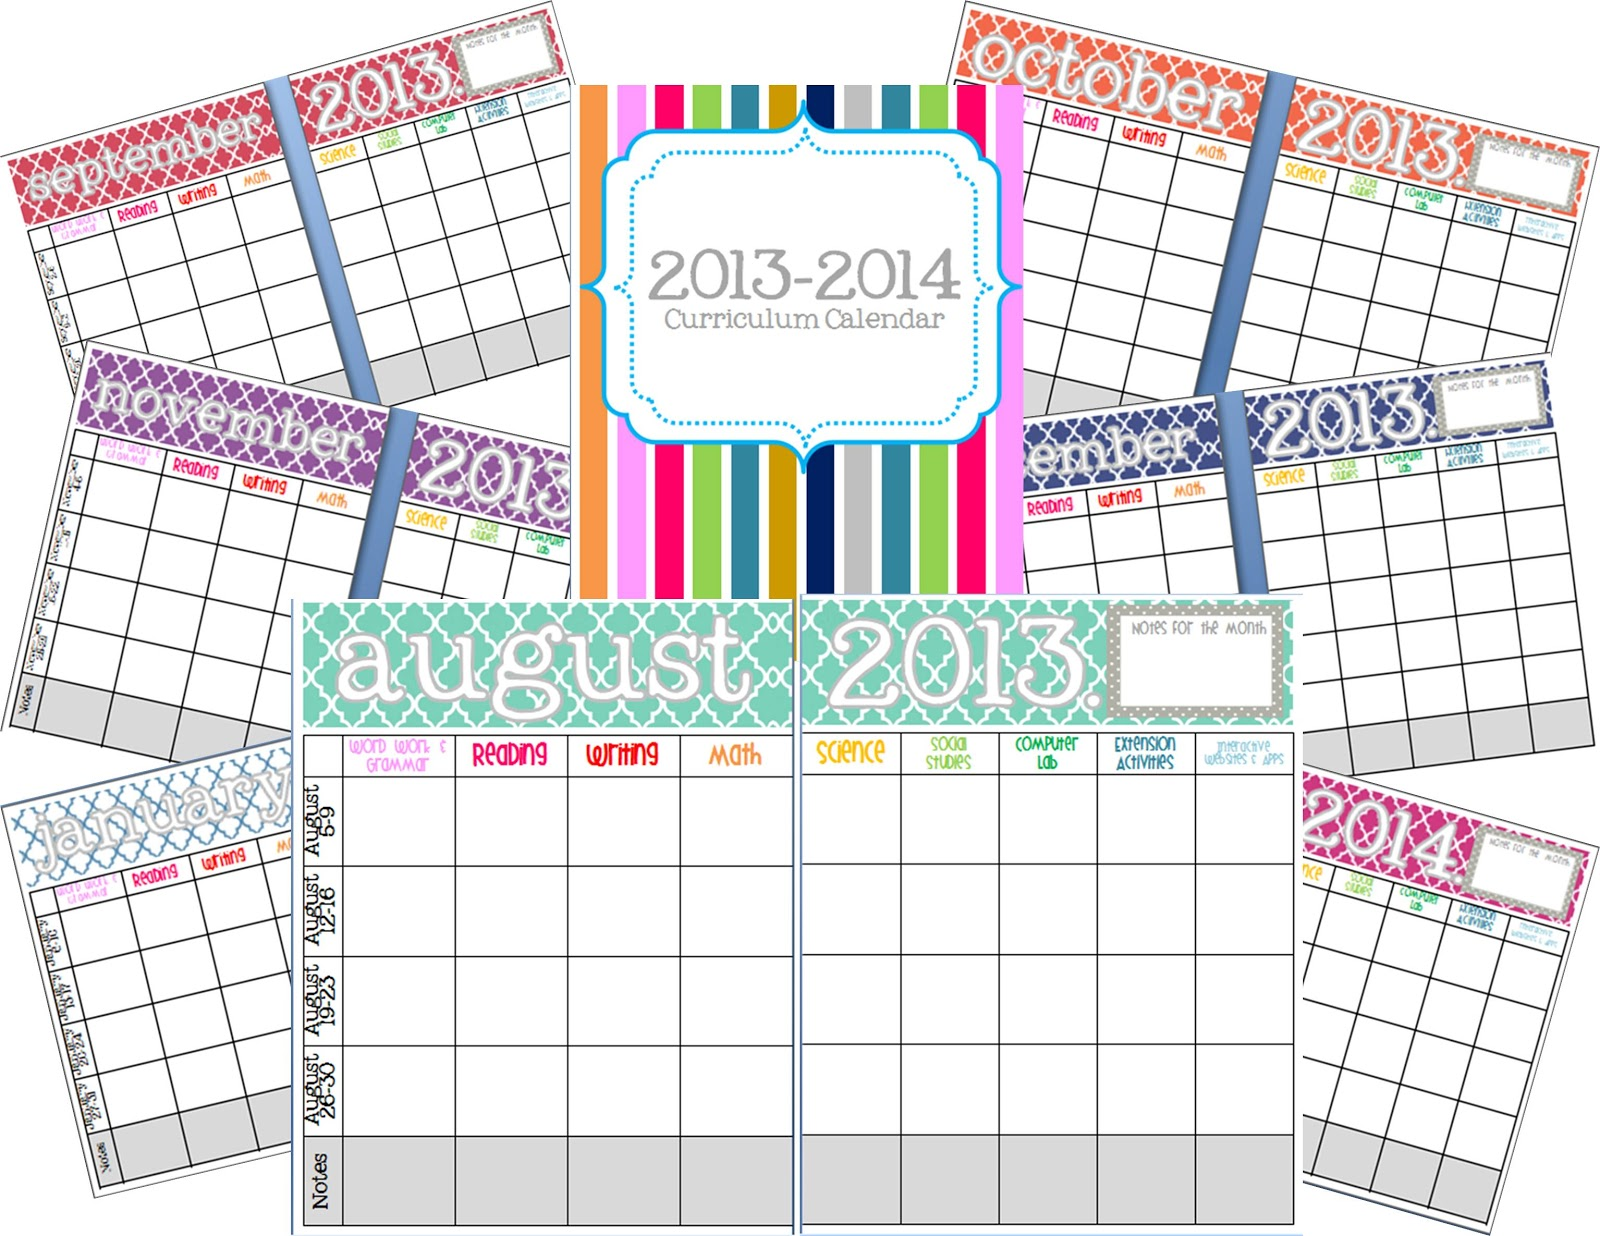 Calendario Planning.Elementary Organization 2013 2014 Curriculum Planning